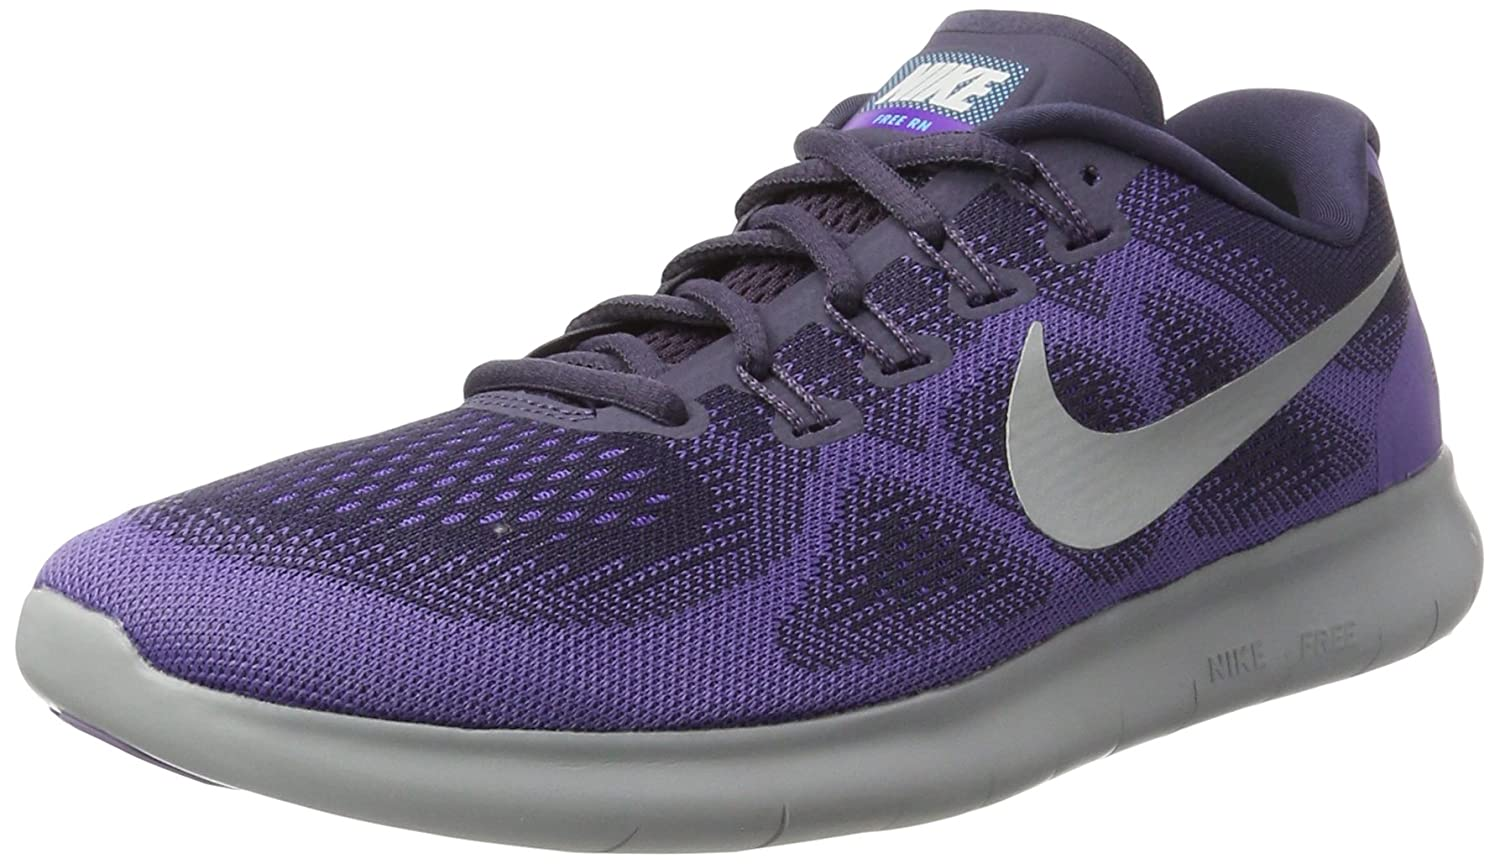 Man's/Woman's Nike Women's RAISIN/PURE Wmns Free RN 2017, DARK RAISIN/PURE Women's PLATINUM Quality products Beautiful Different styles and styles GW13464 a17cd4